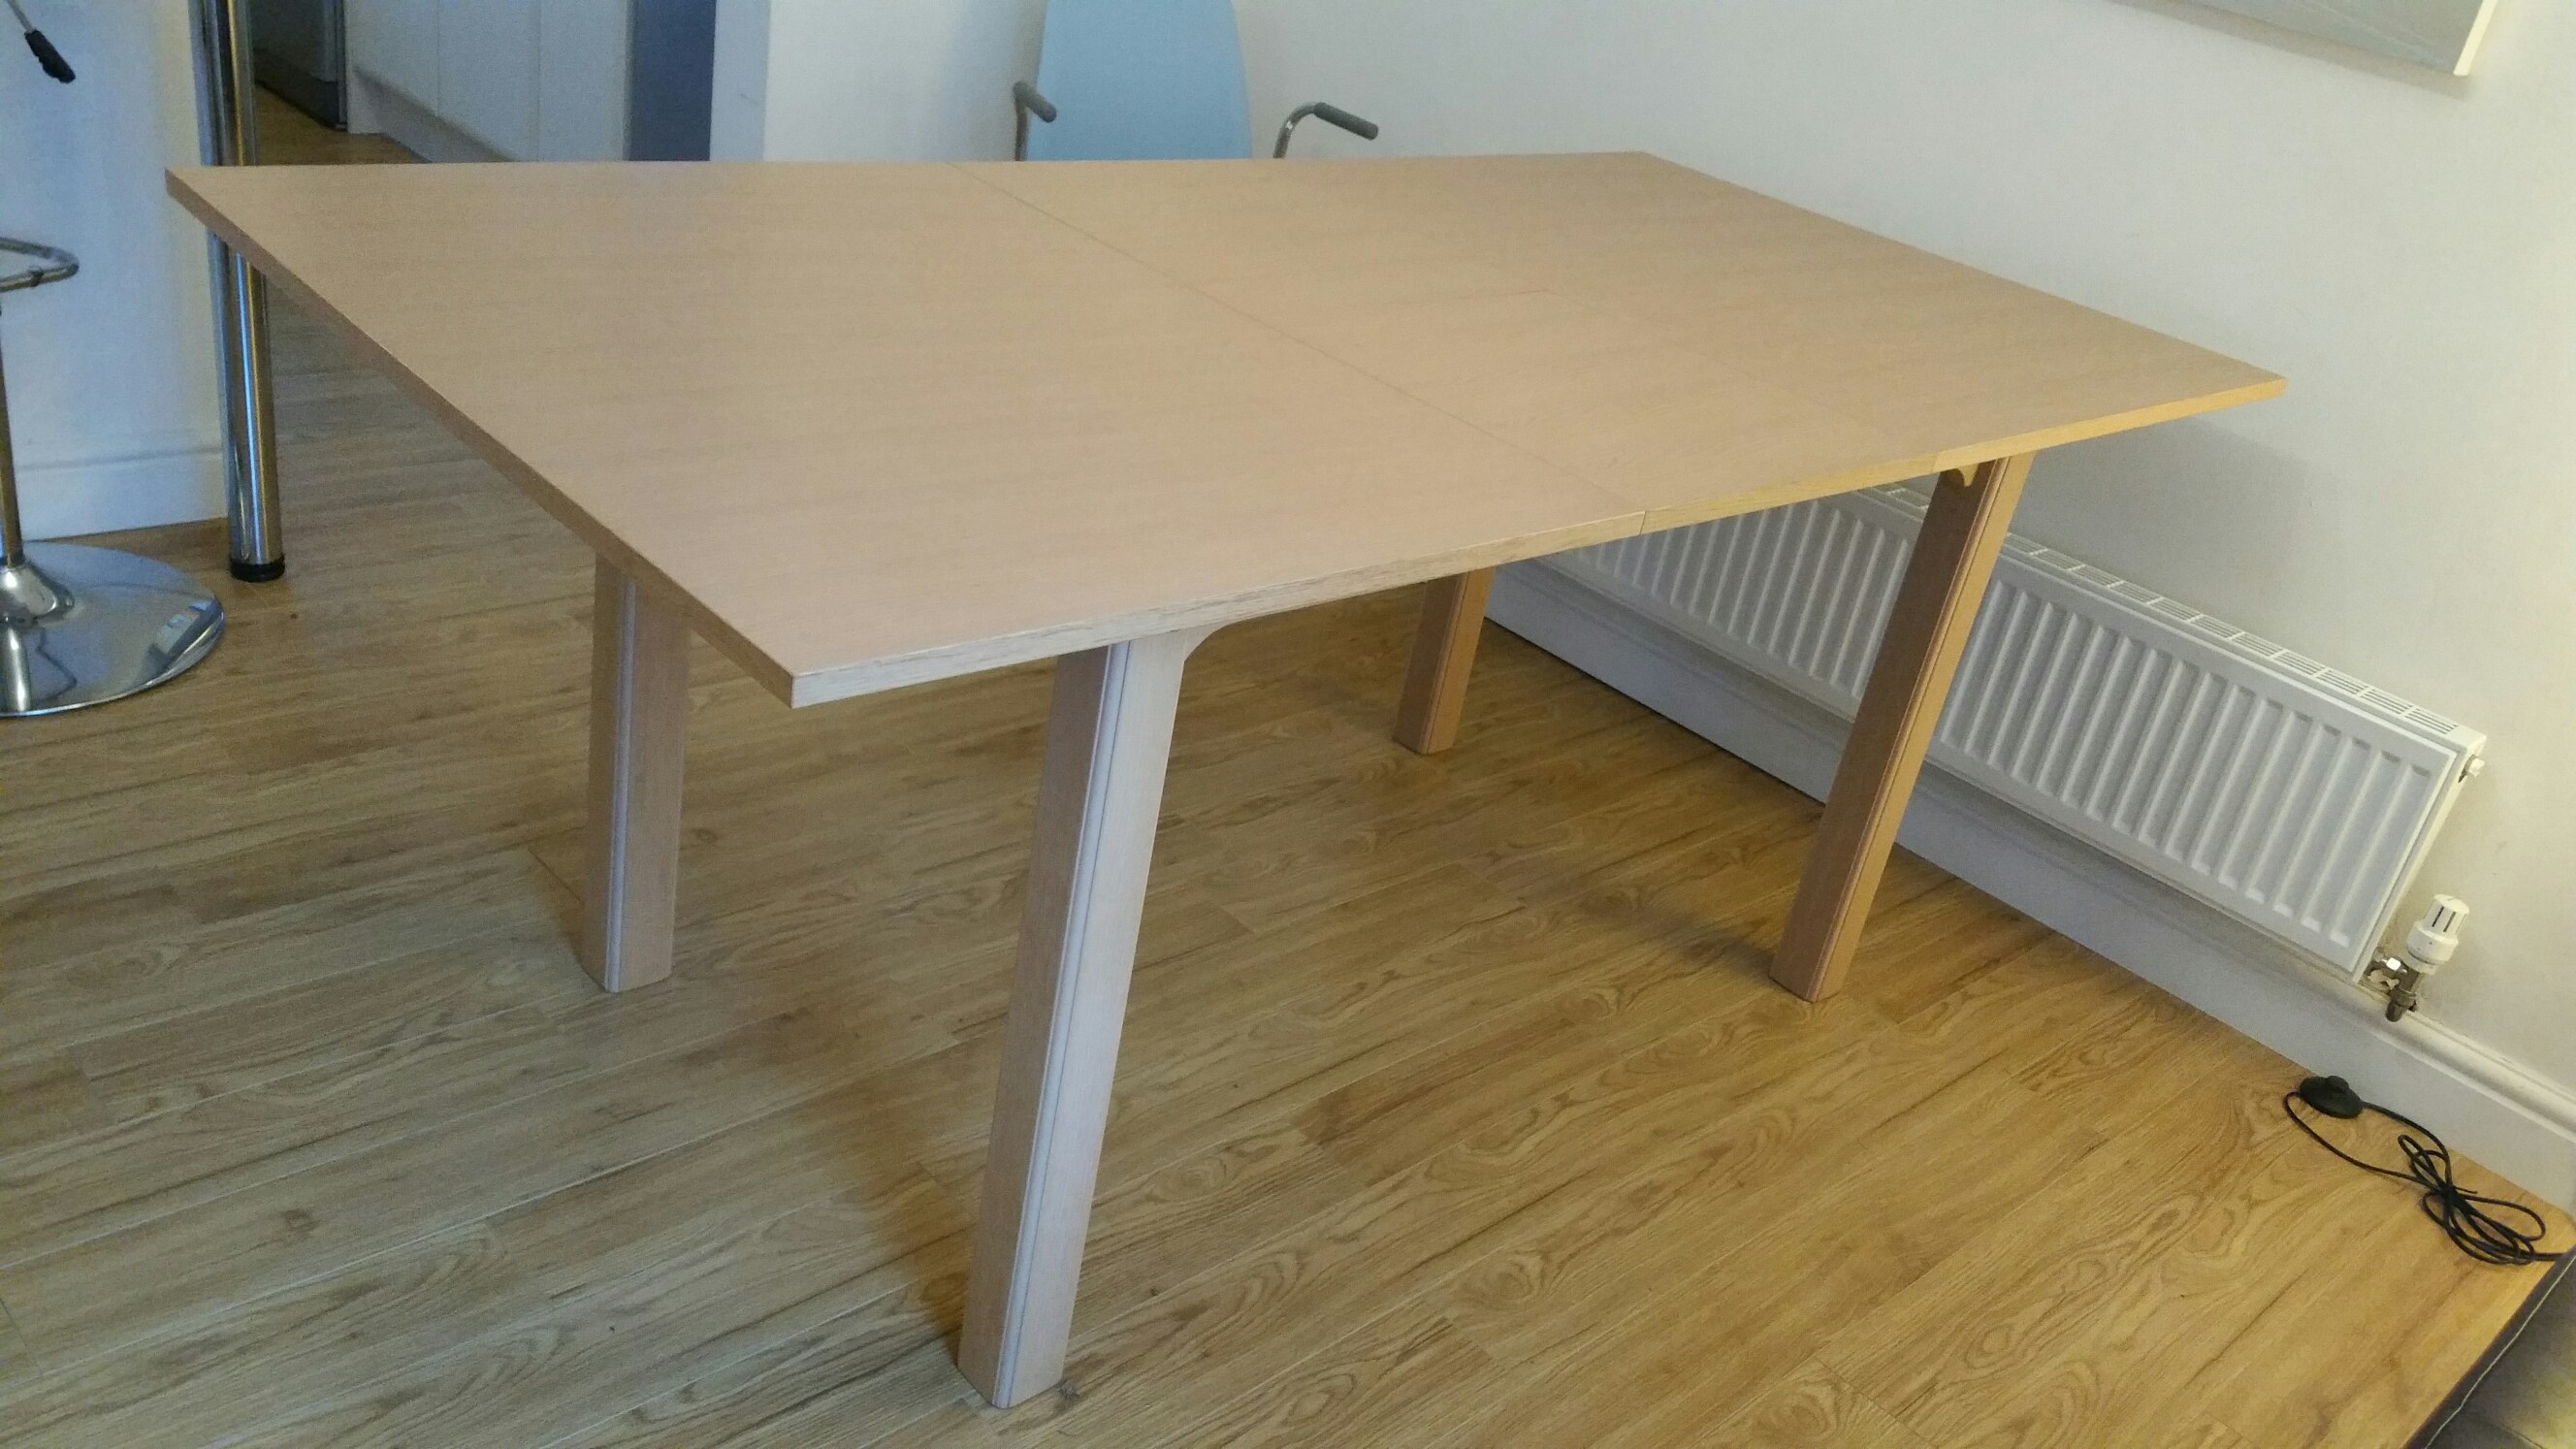 Ikea bjursta extendable dining table for sale in uk for 10 person dining table for sale